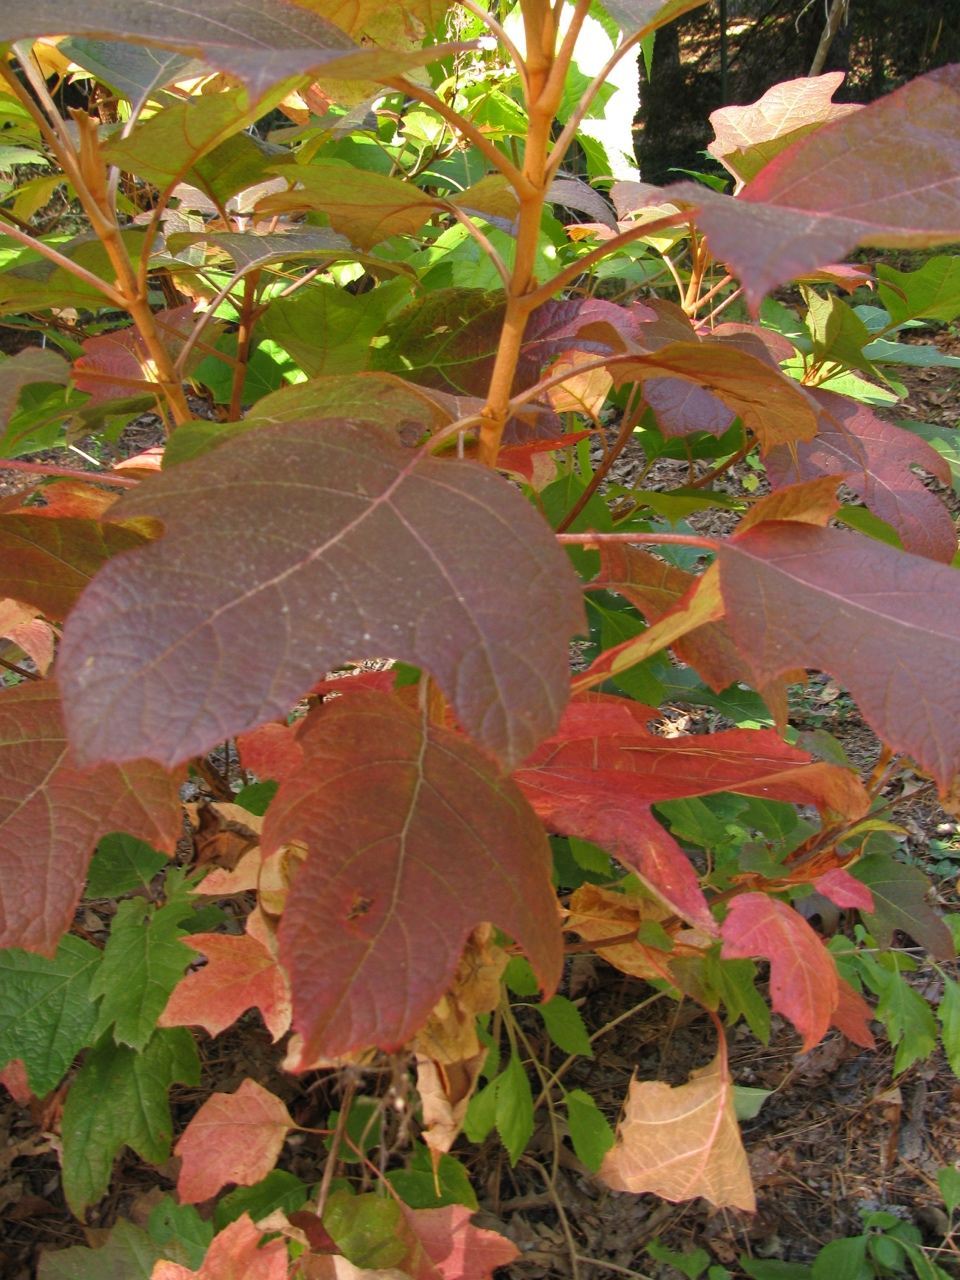 The Scientific Name is Hydrangea quercifolia. You will likely hear them called Oakleaf Hydrangea. This picture shows the Beautiful Fall color of Hydrangea quercifolia